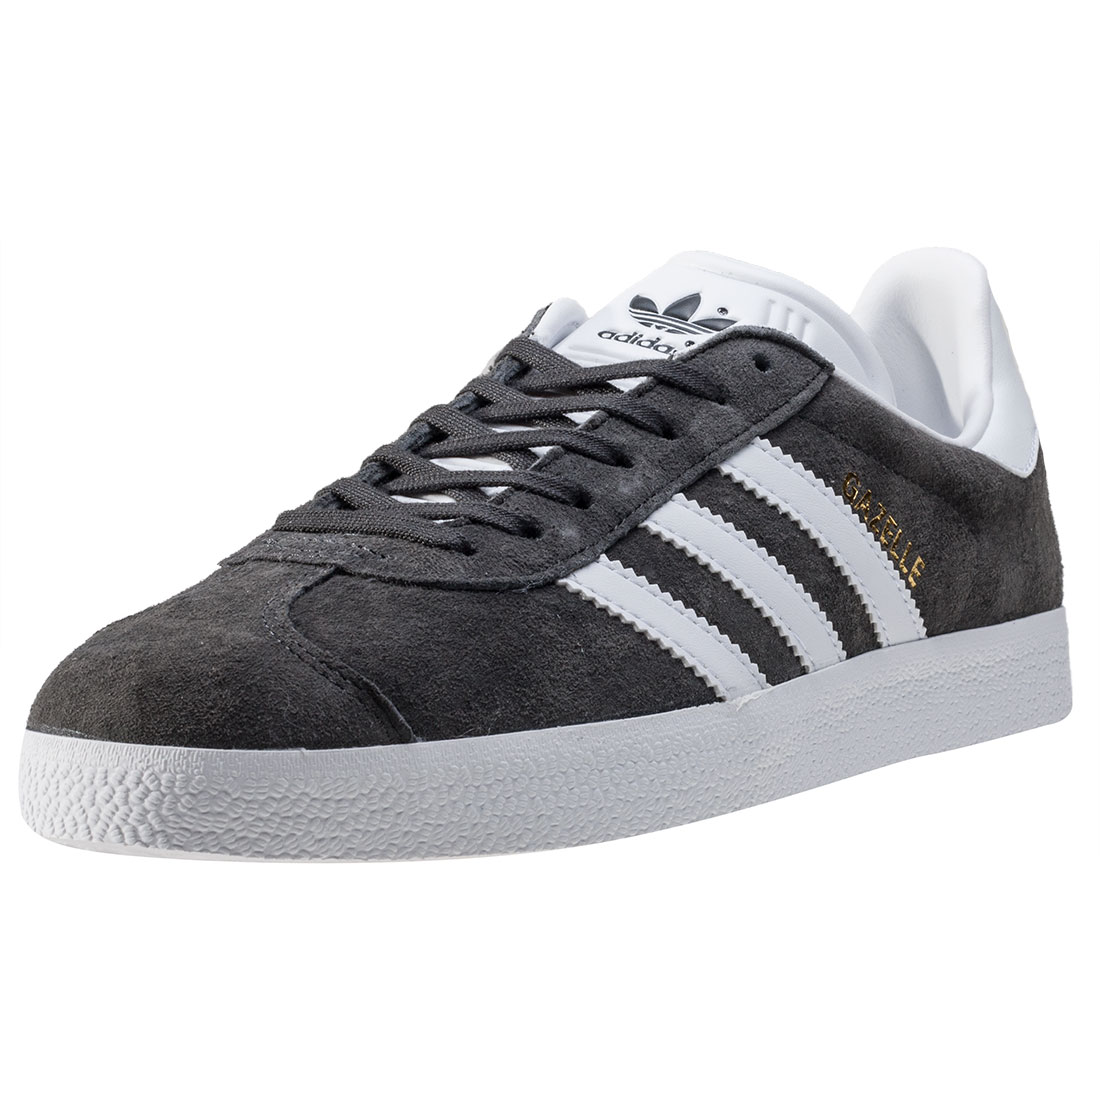 adidas gazelles image is loading adidas-gazelle-womens-trainers-dark-grey-new-shoes HHDKQAF